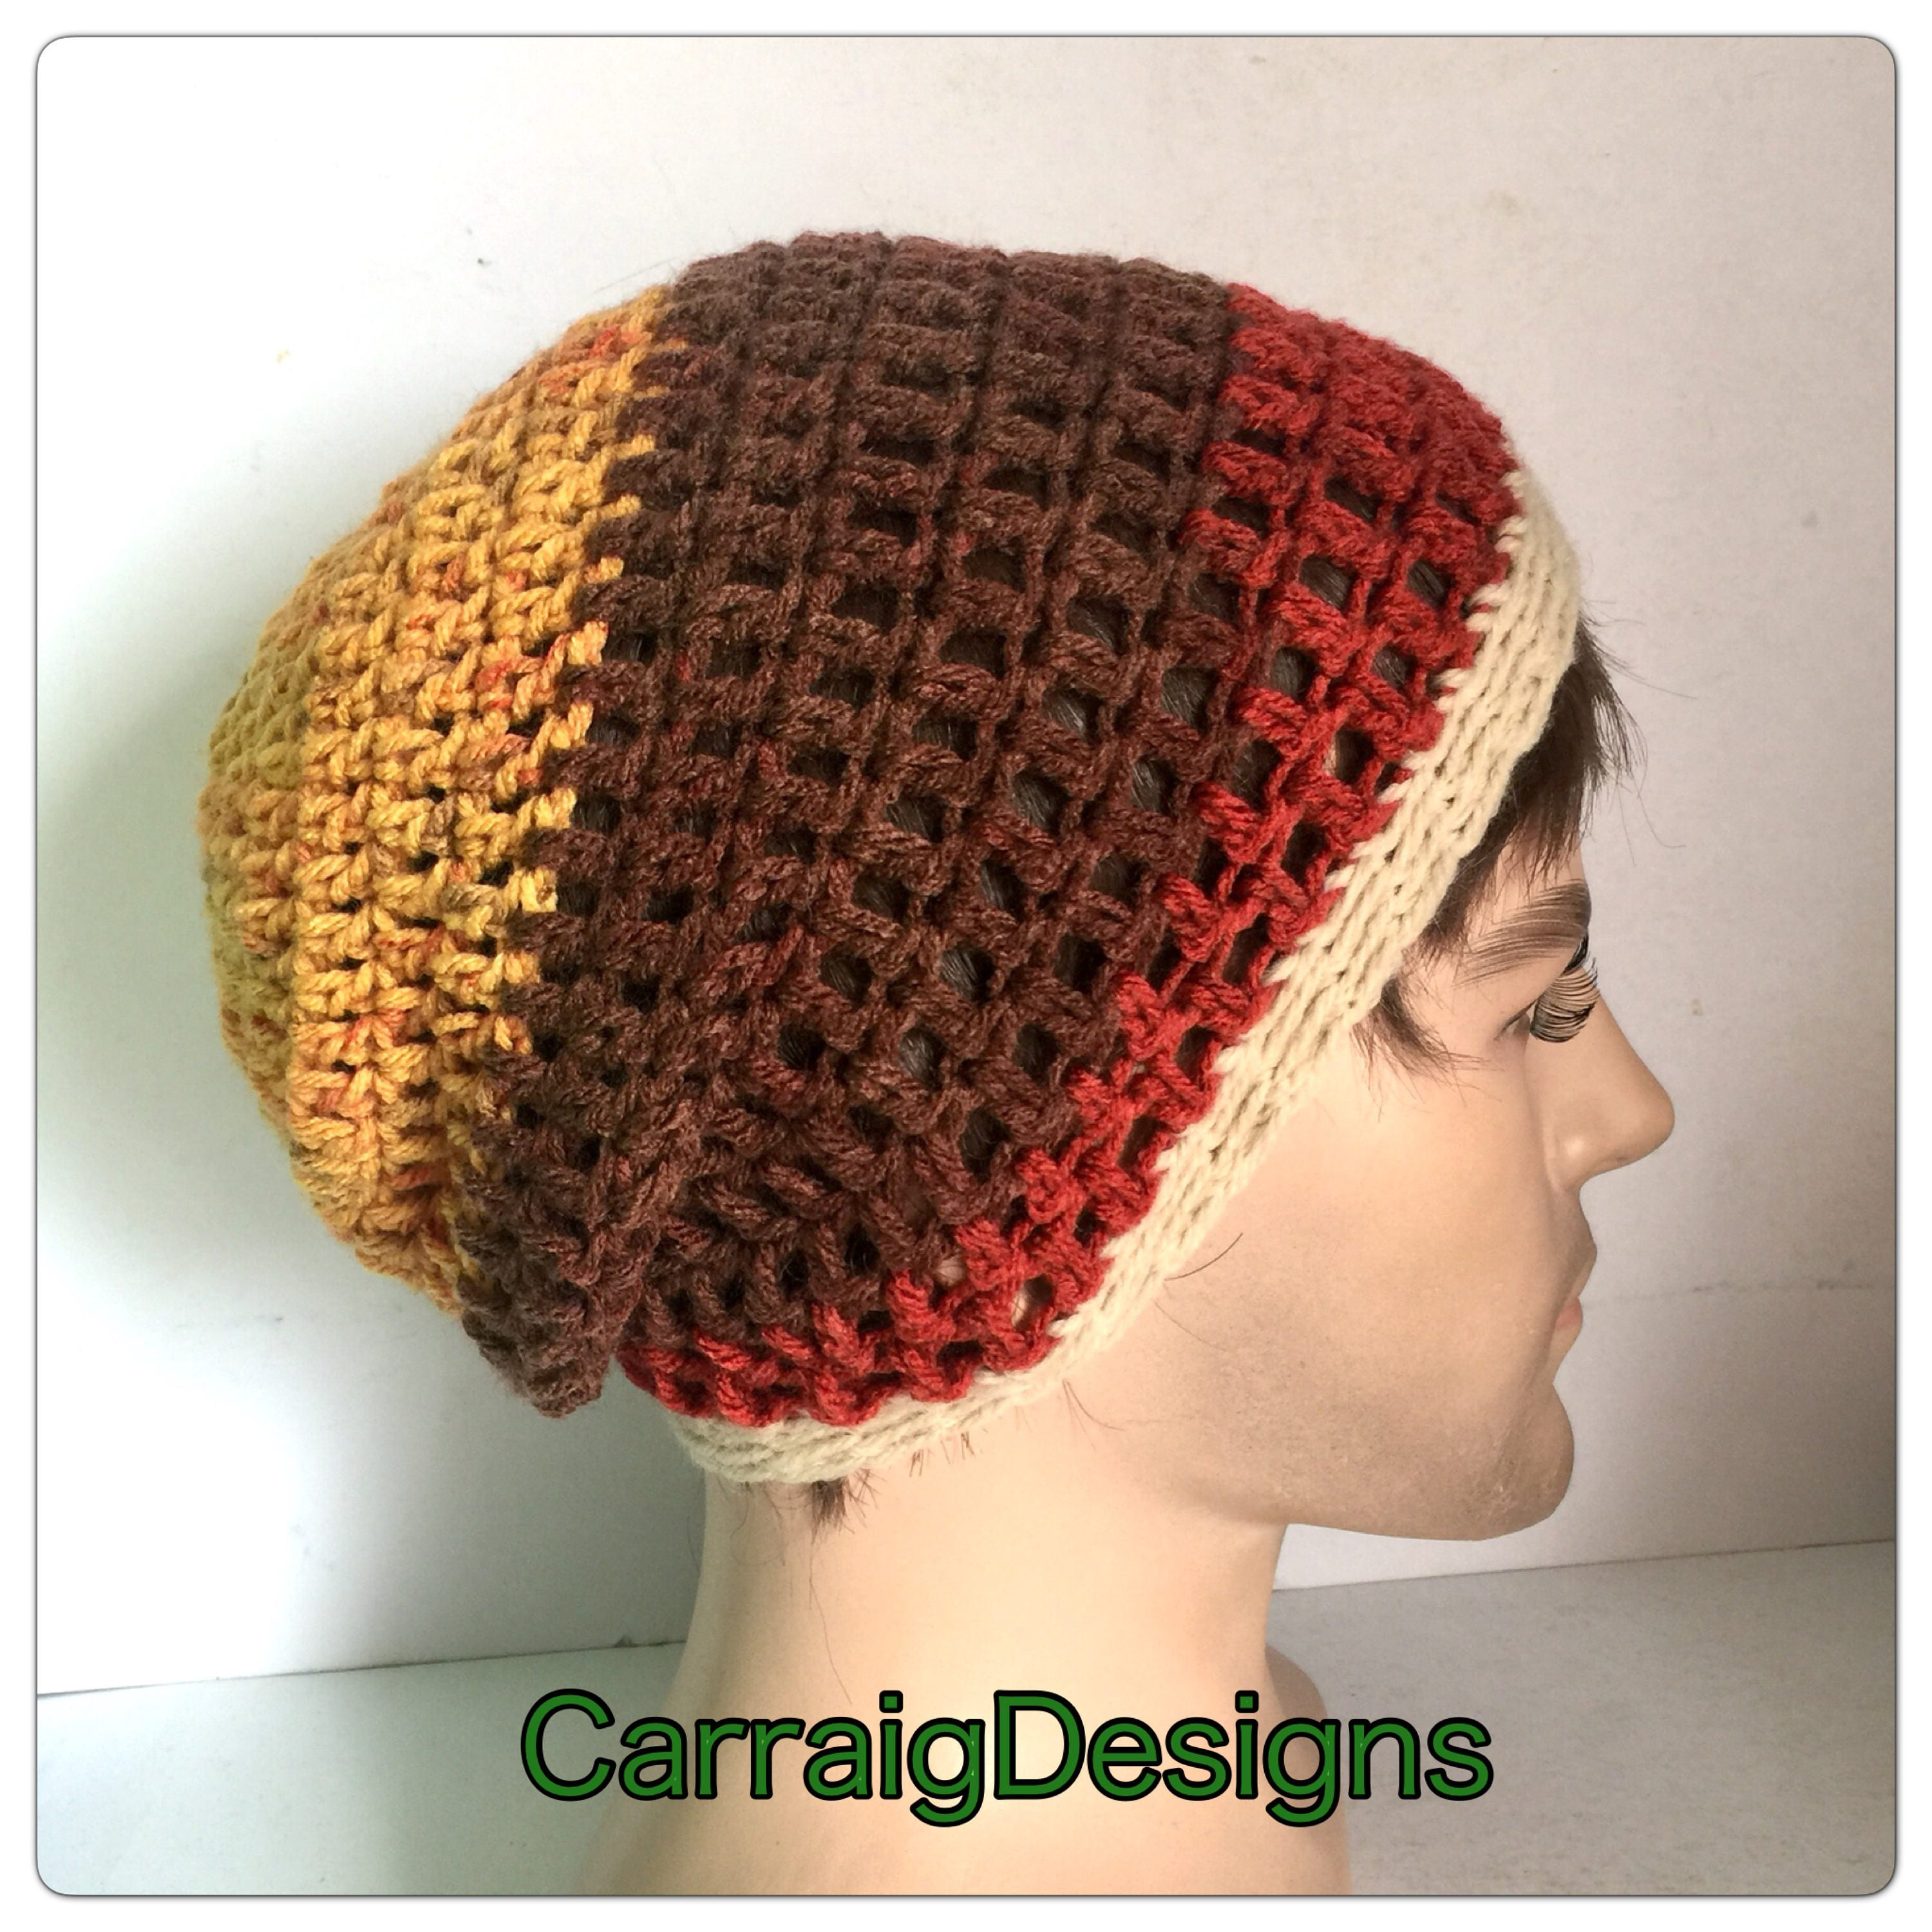 bb2cbcd811a Mens slouch beanie hat man Designer hand crochet knitted oversized guy  slouchy striped gaming dread tam sale unisex women xmas gift ooak